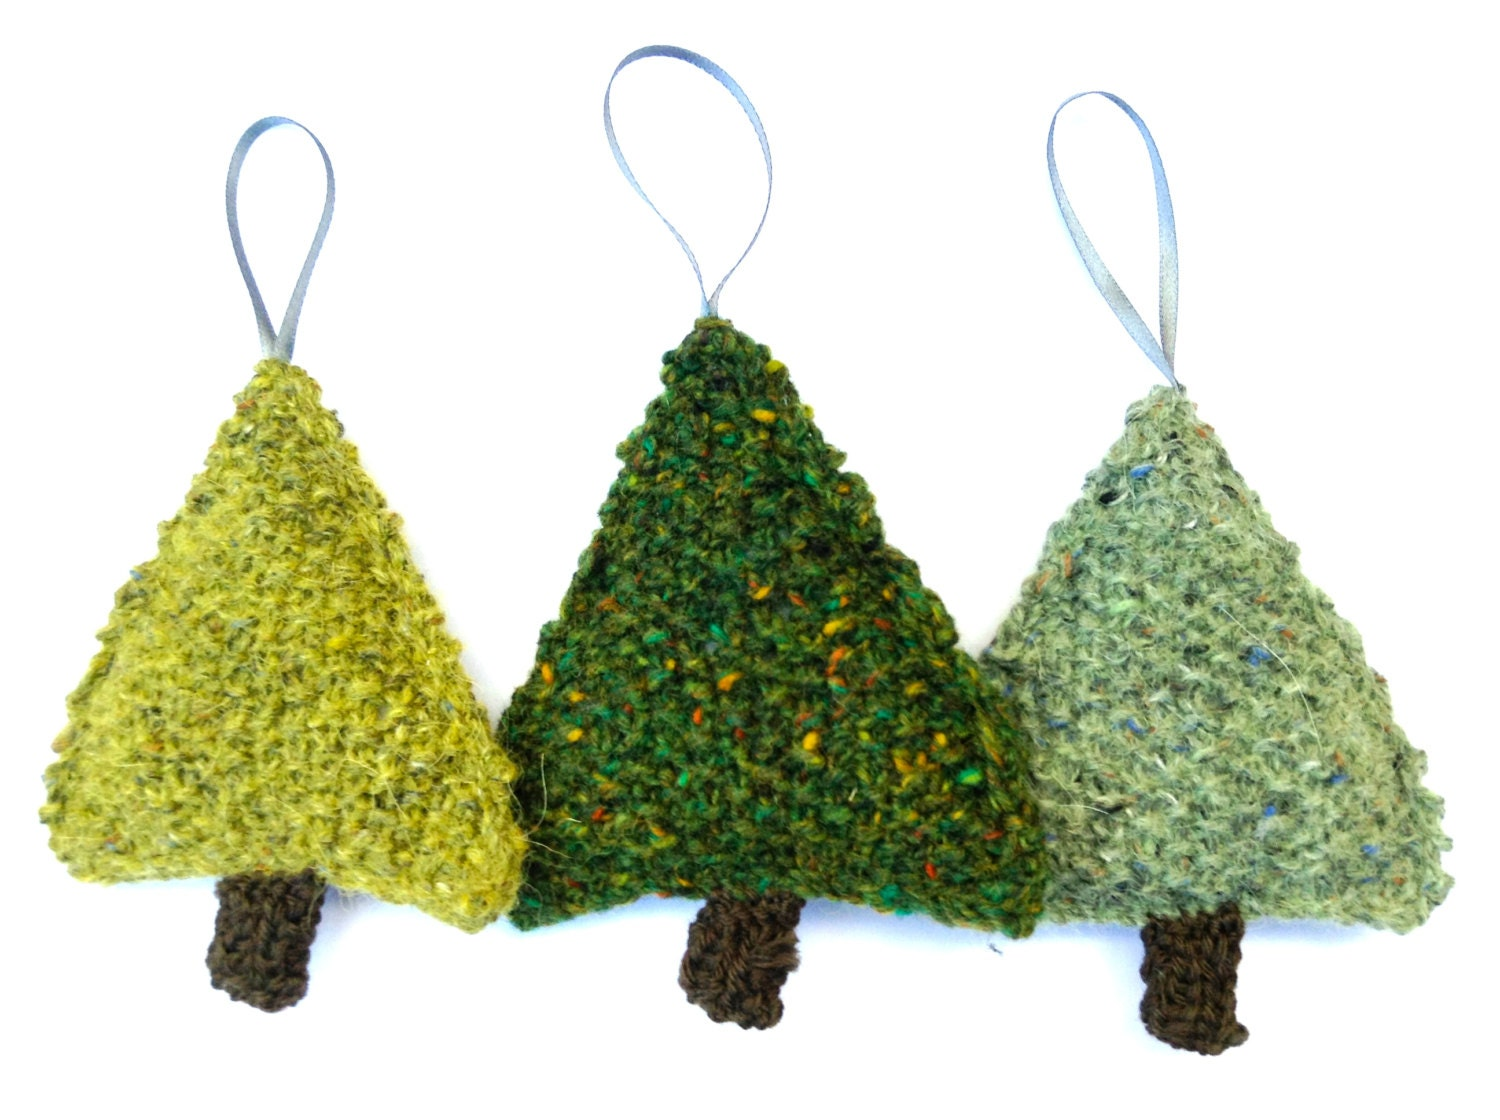 Knitting Pattern For A Christmas Tree : Christmas Tree knitting pattern by louiseshandknits on Etsy